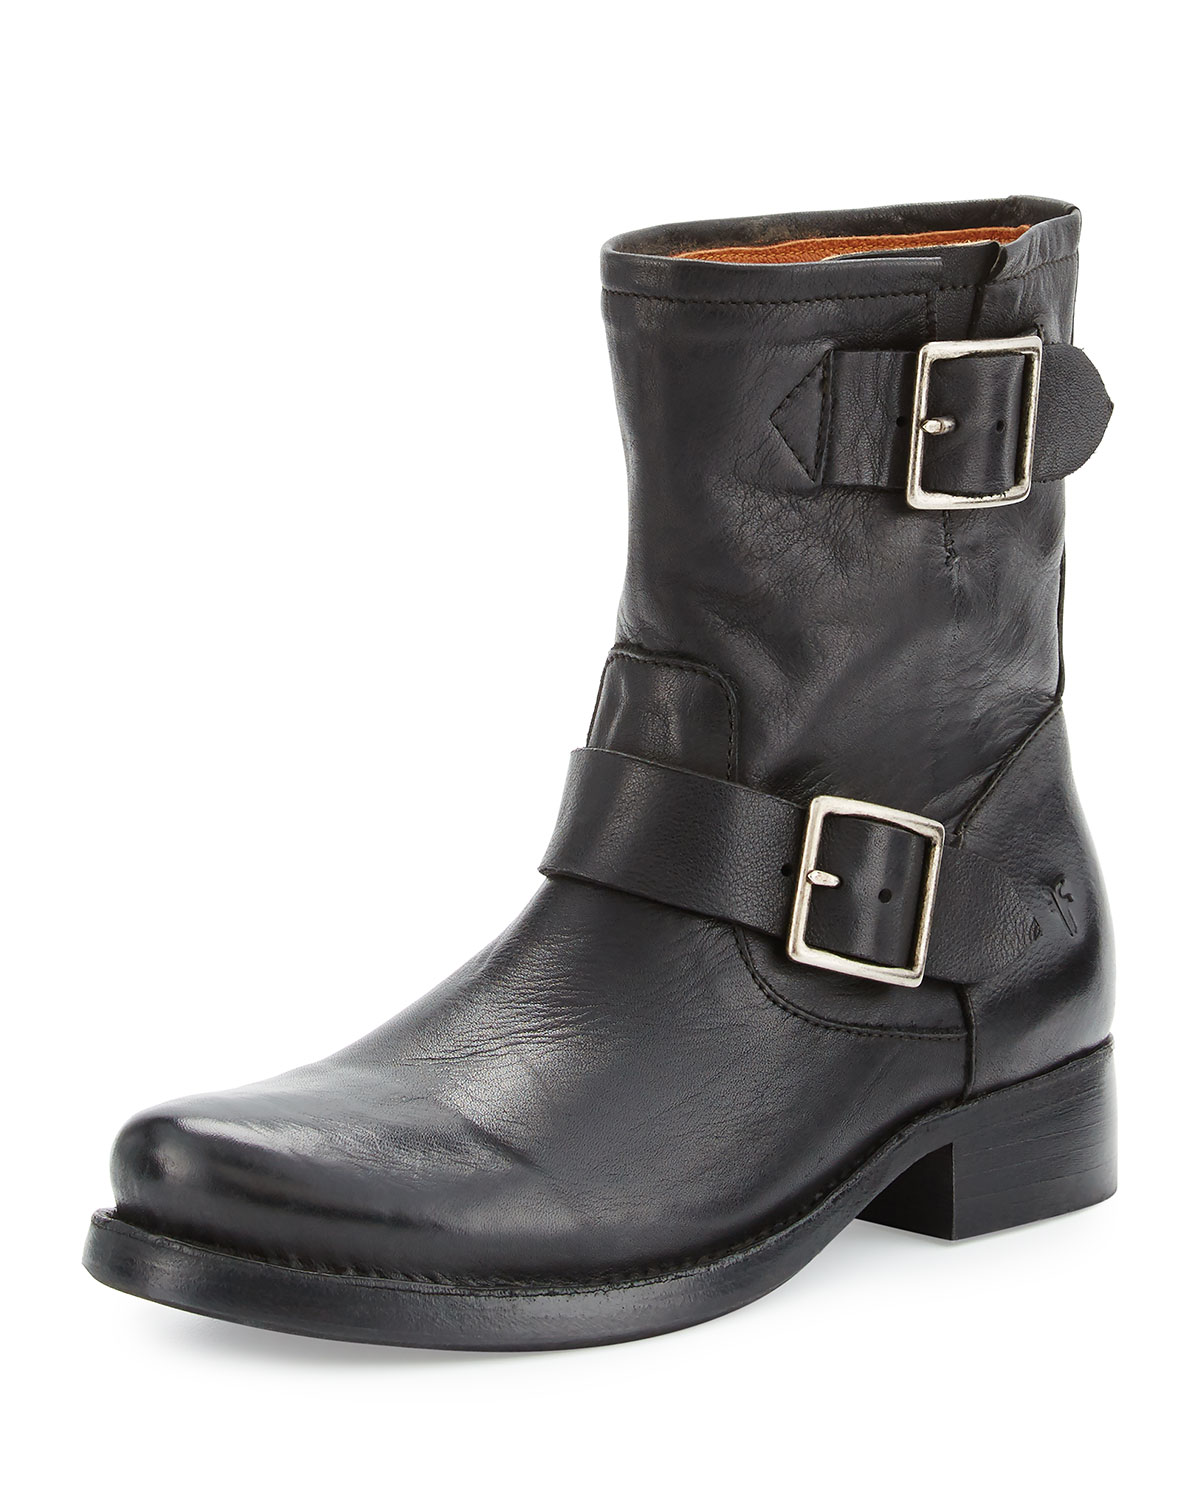 c78ae134f3d Vicky Engineer Leather Bootie, Black